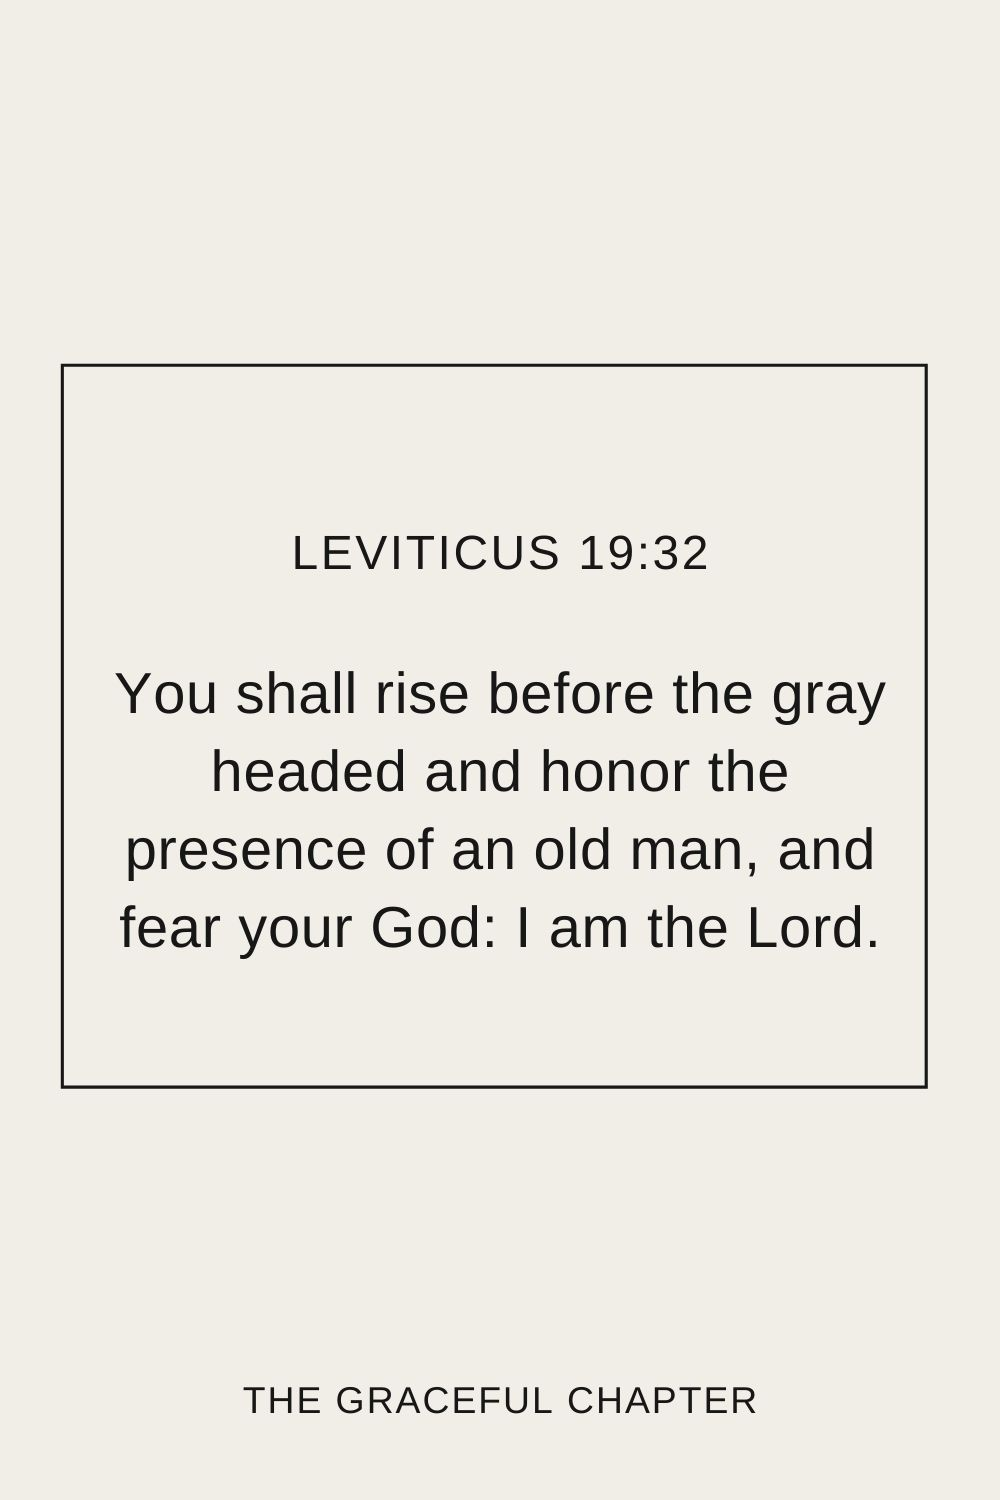 You shall rise before the gray headed and honor the presence of an old man, and fear your God: I am the Lord. Leviticus 19:32